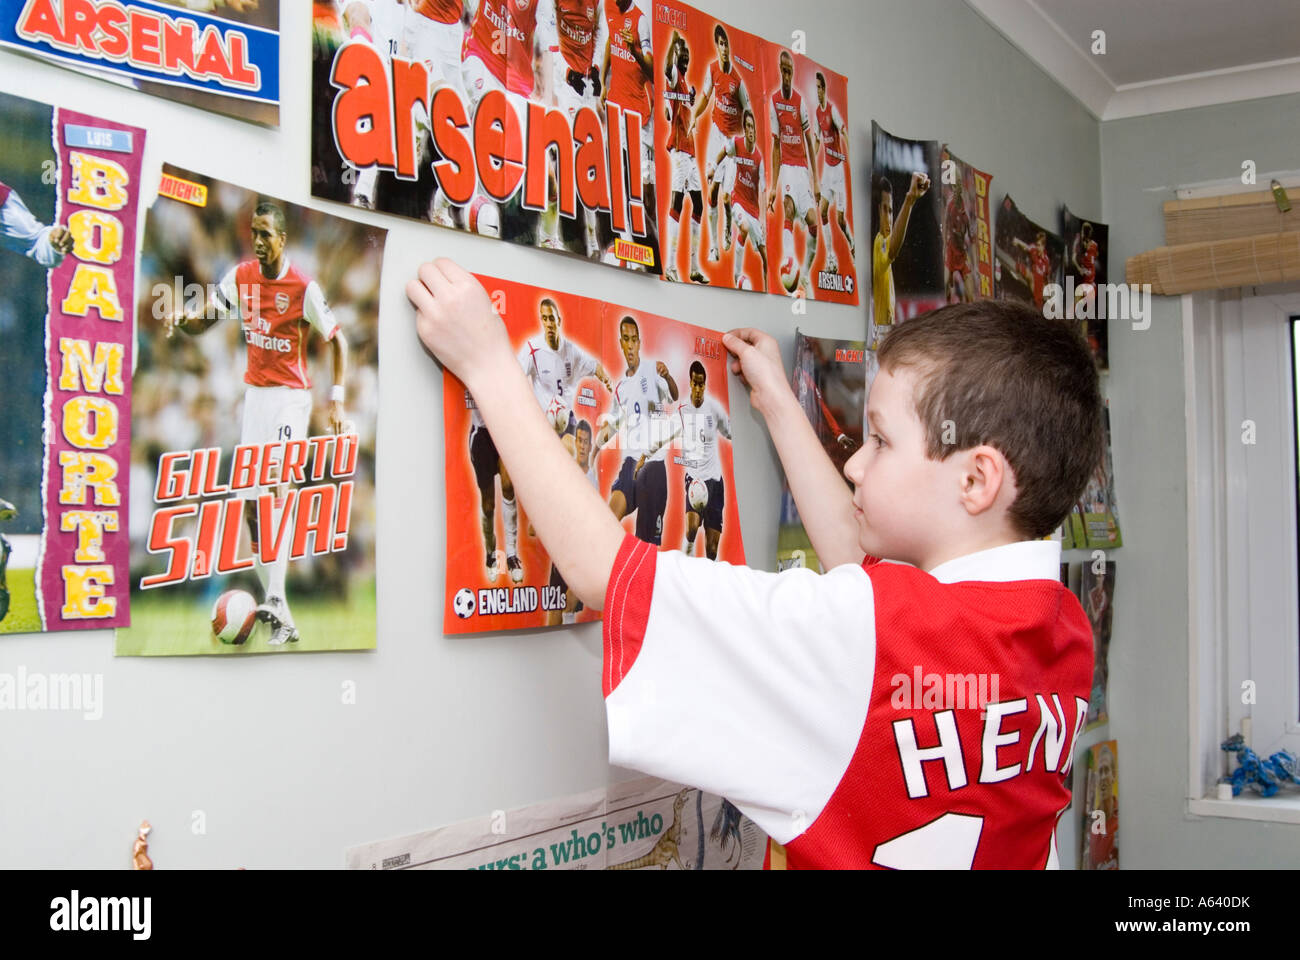 Young Arsenal football supporter boy putting up posters on his bedroom wall, London, England, UK - Stock Image